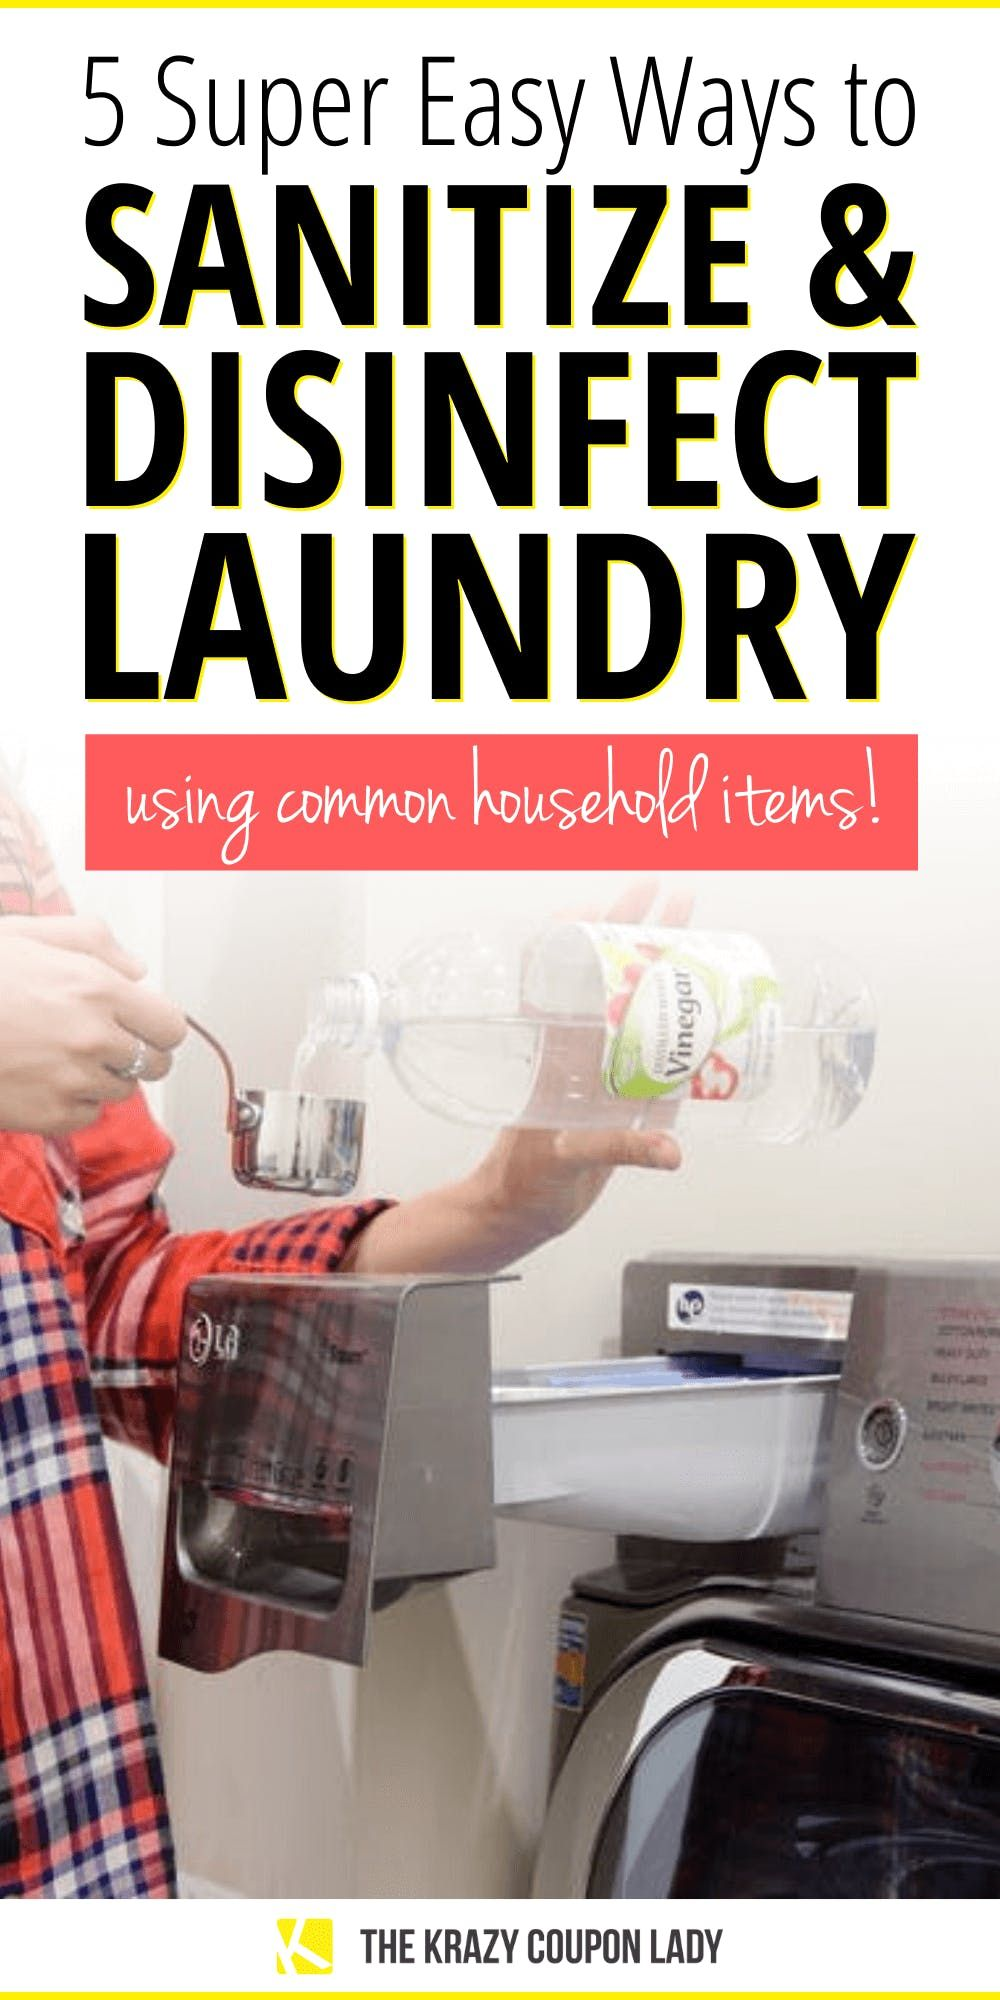 How To Sanitize Disinfect Laundry With Common Household Items In